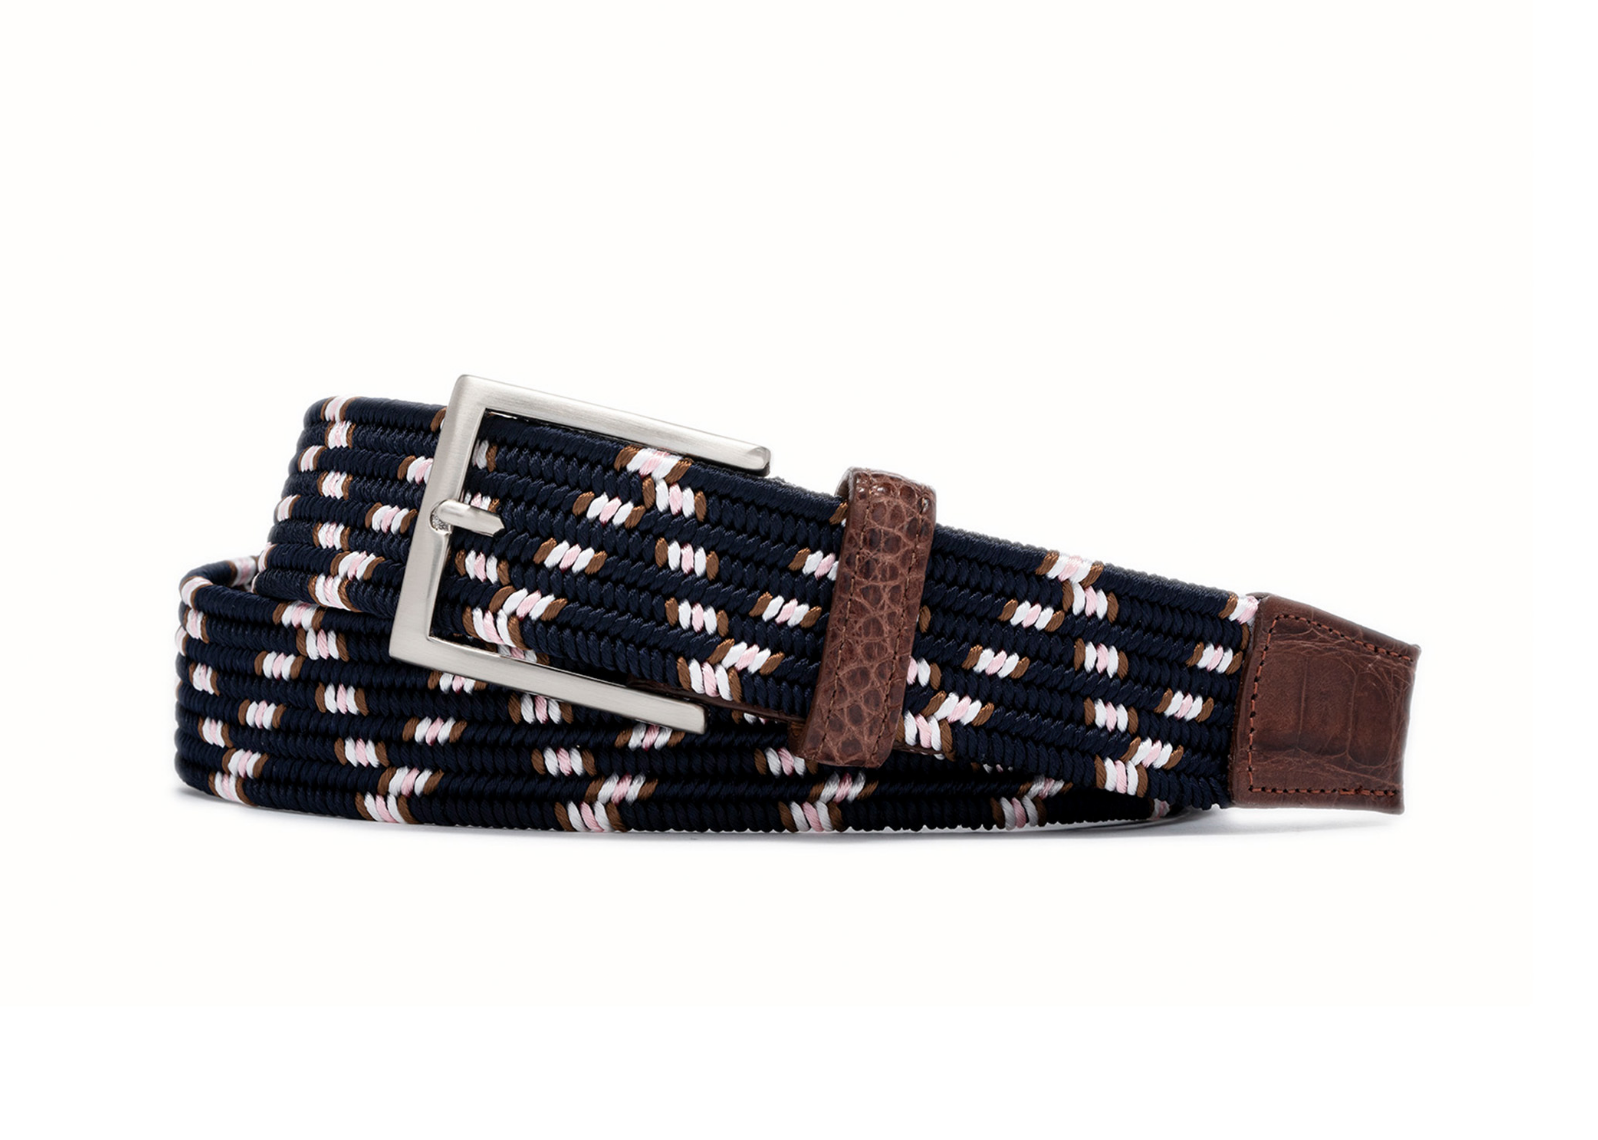 W.KLEINGBERG HARTFORD STRETCH BELT - NAVY